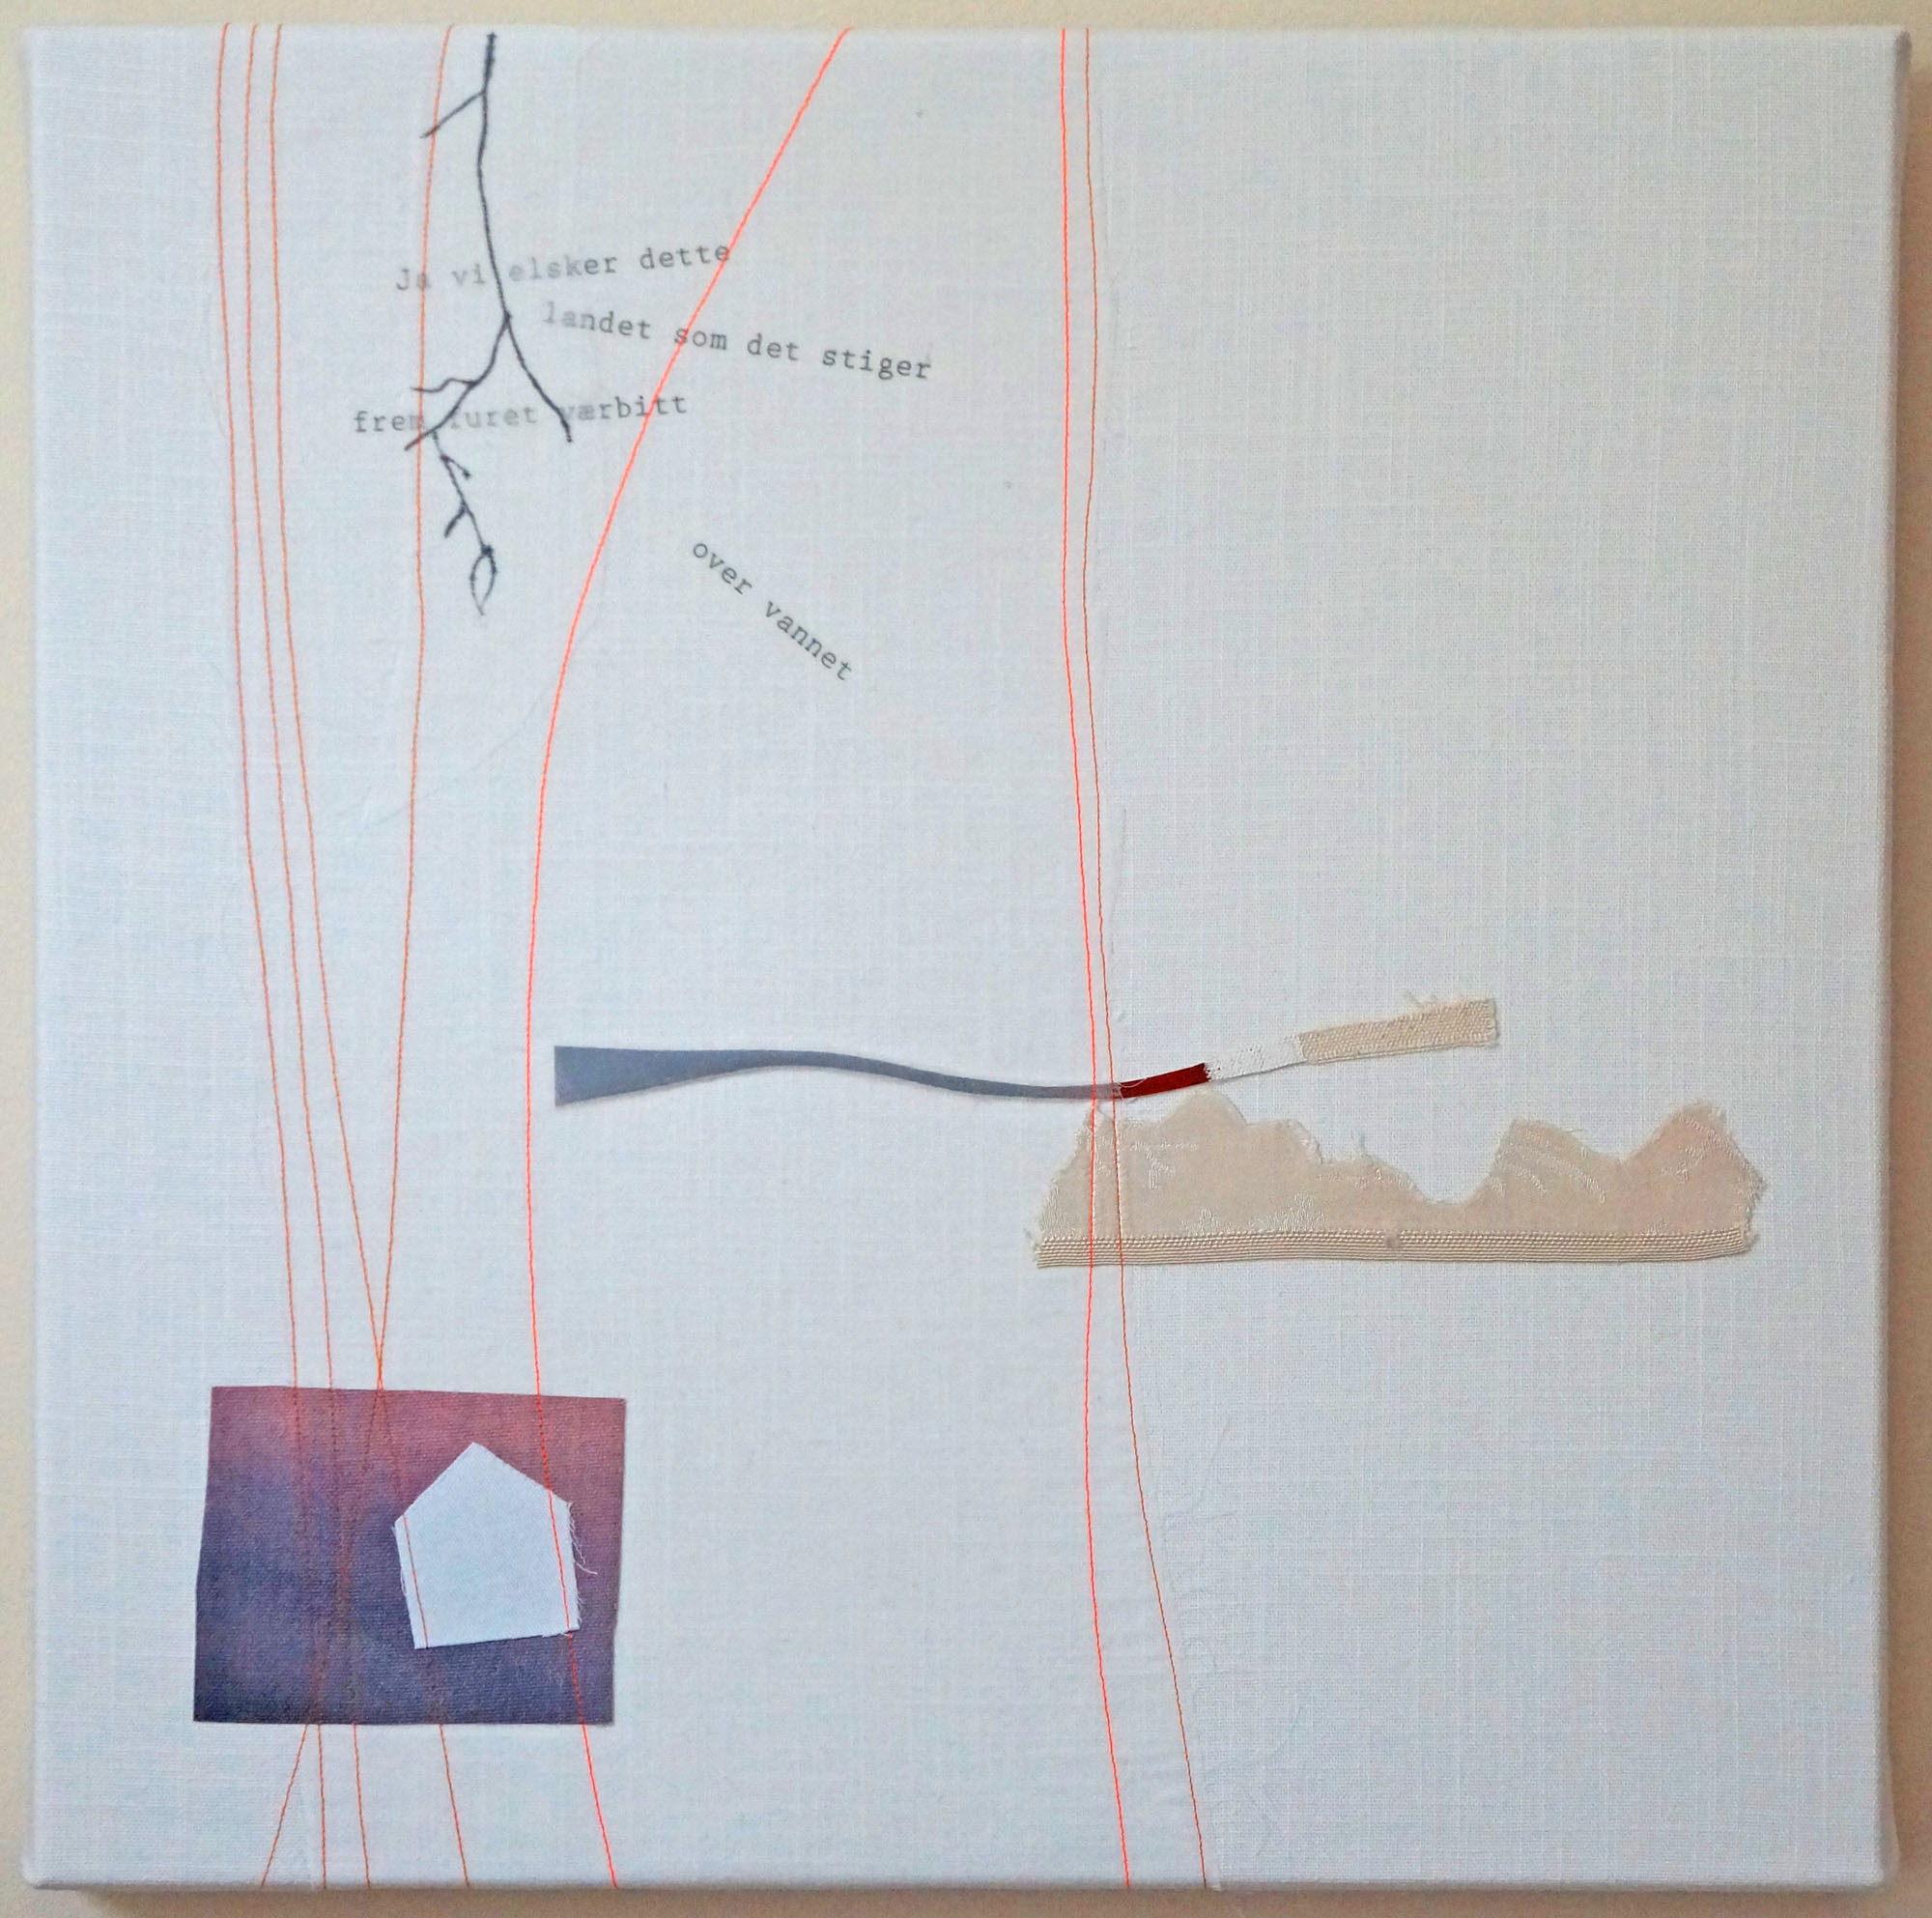 Ja Vi Elsker -  17 x 17 inches, incorporating digital printing, ink drawing and pieces of discarded oil paintings, stretched